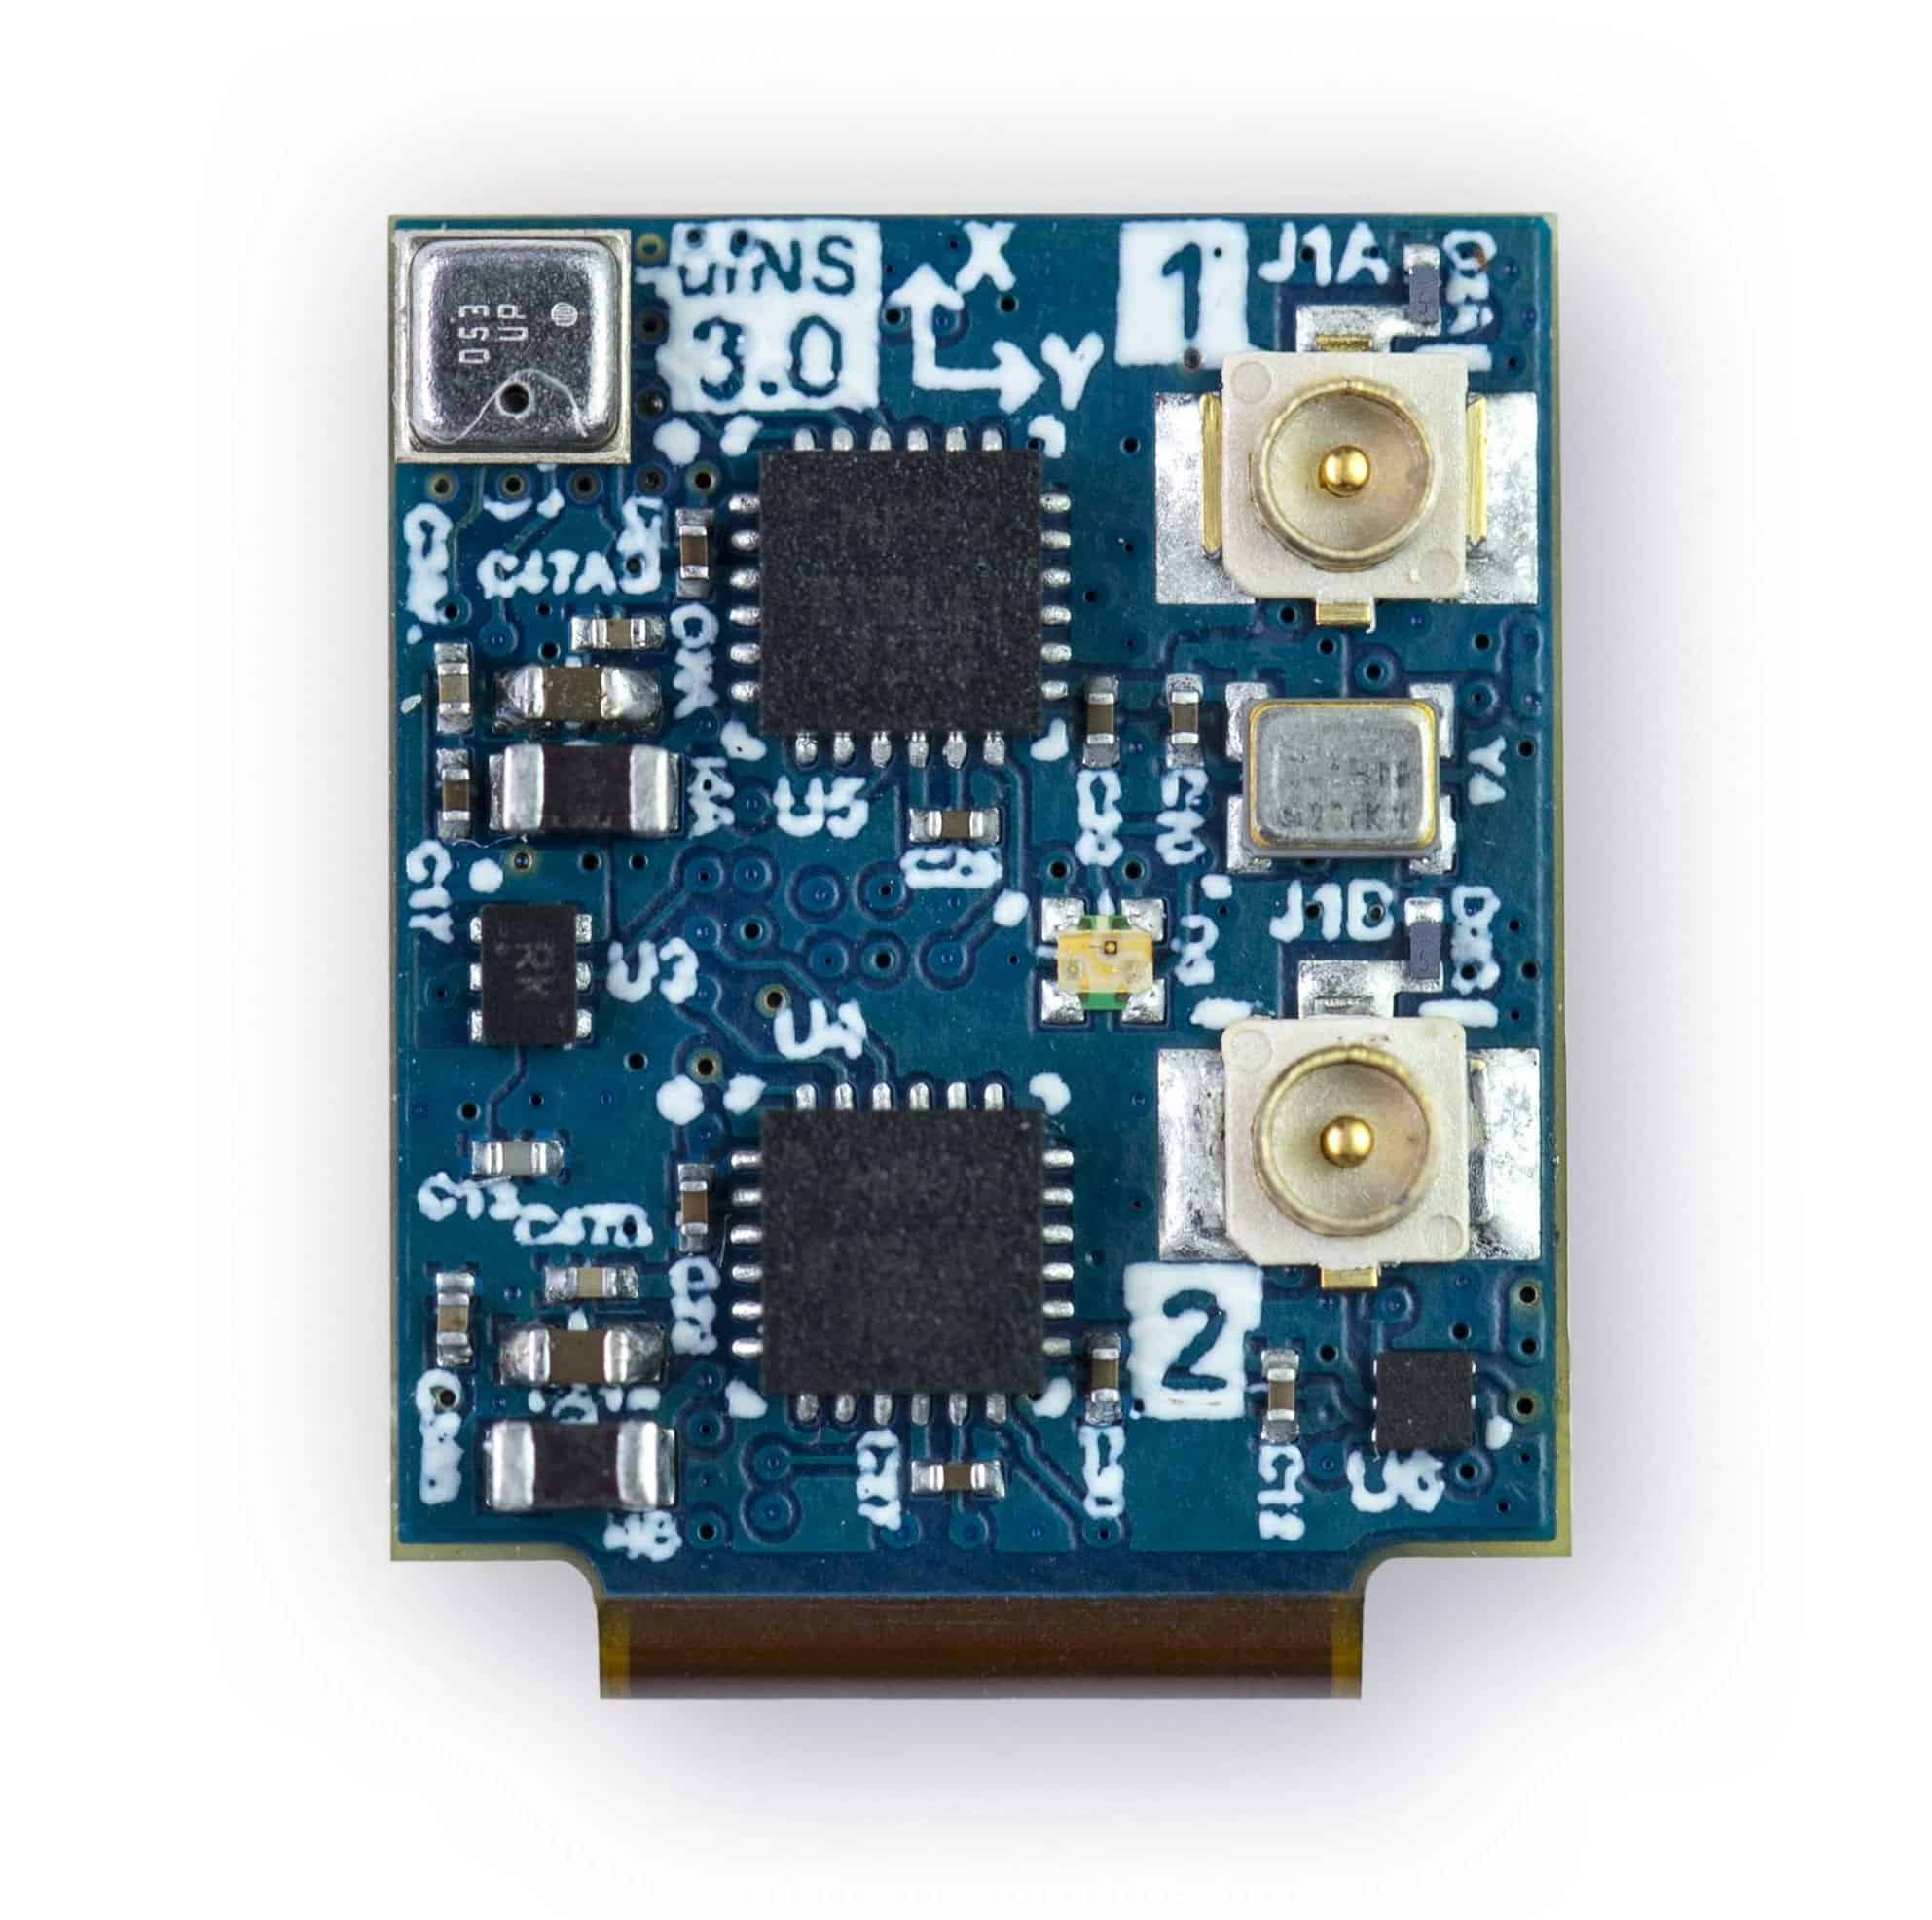 µINS Miniature INS for UAVs